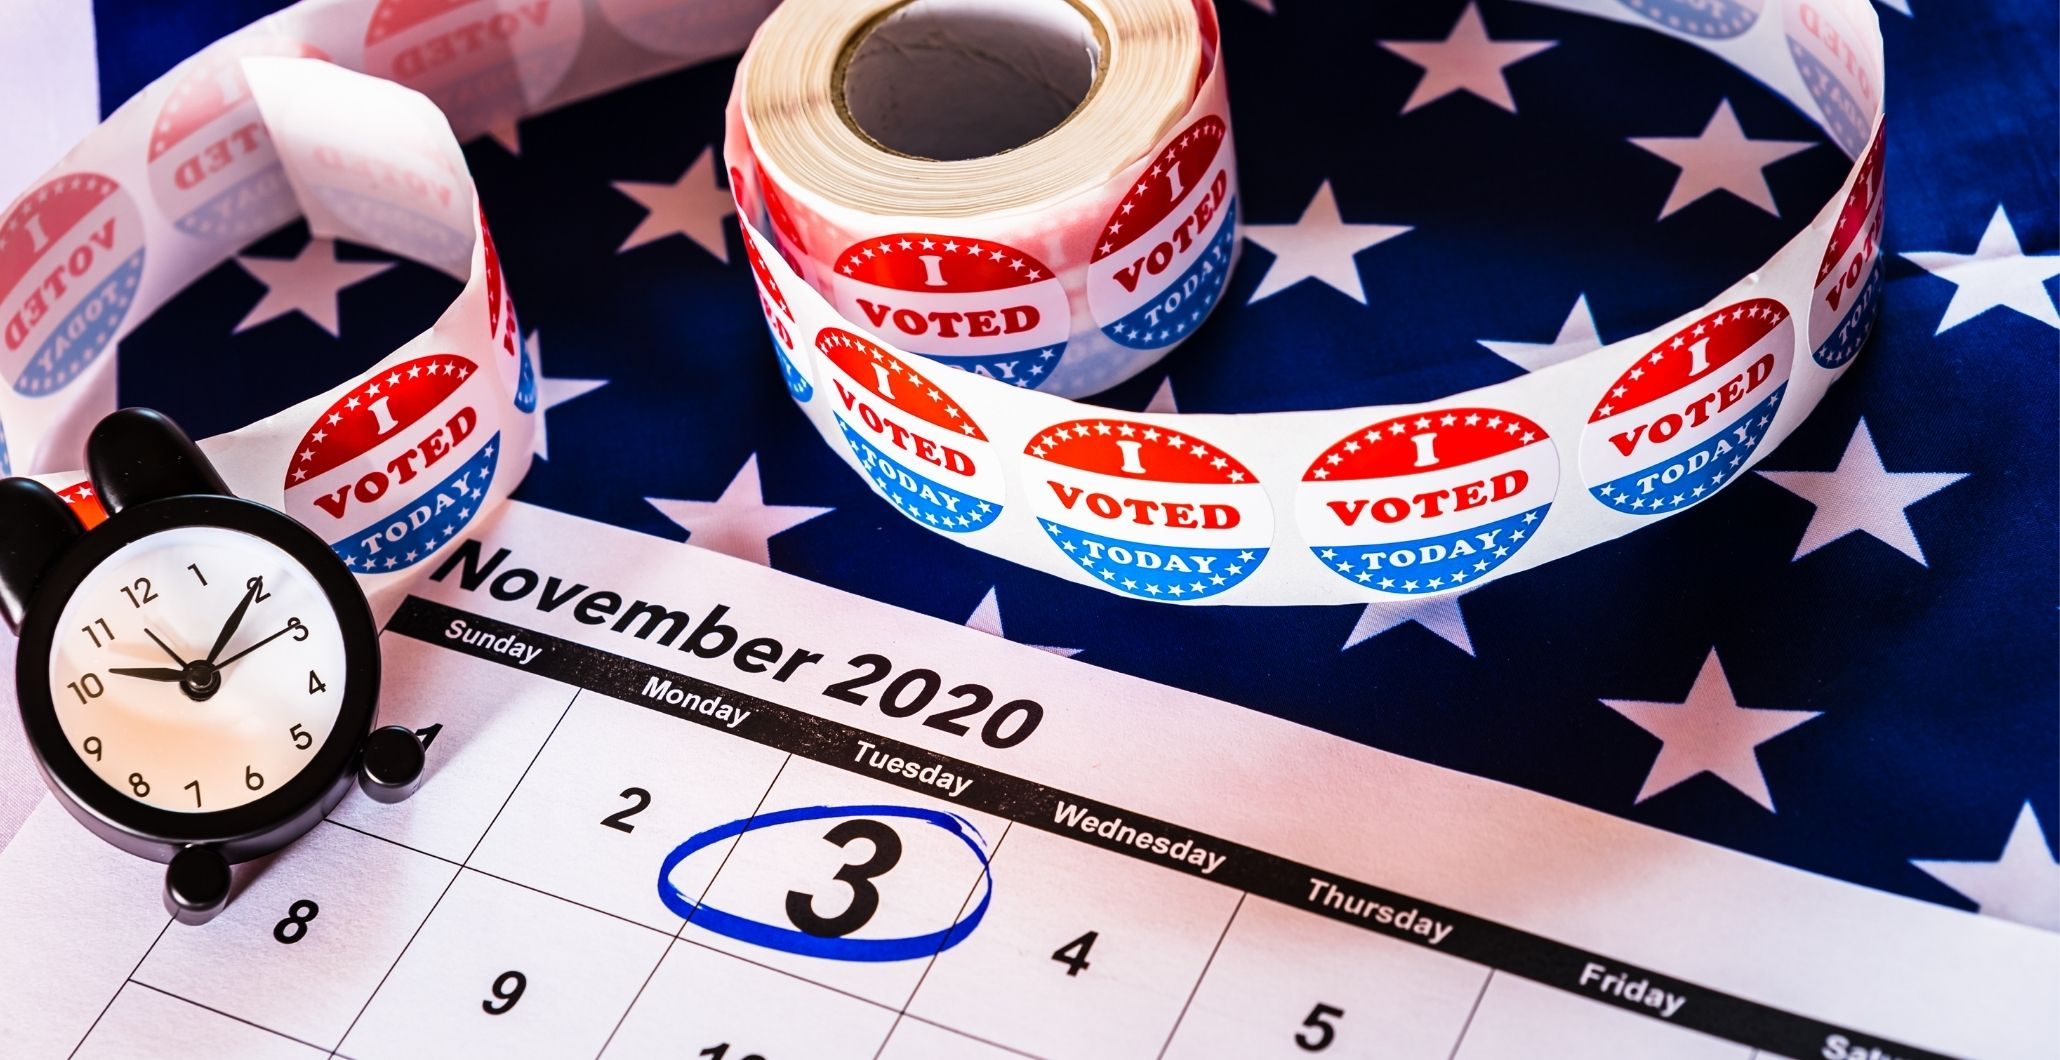 Elect to Read: Books on Voting, Elections, and Democracy